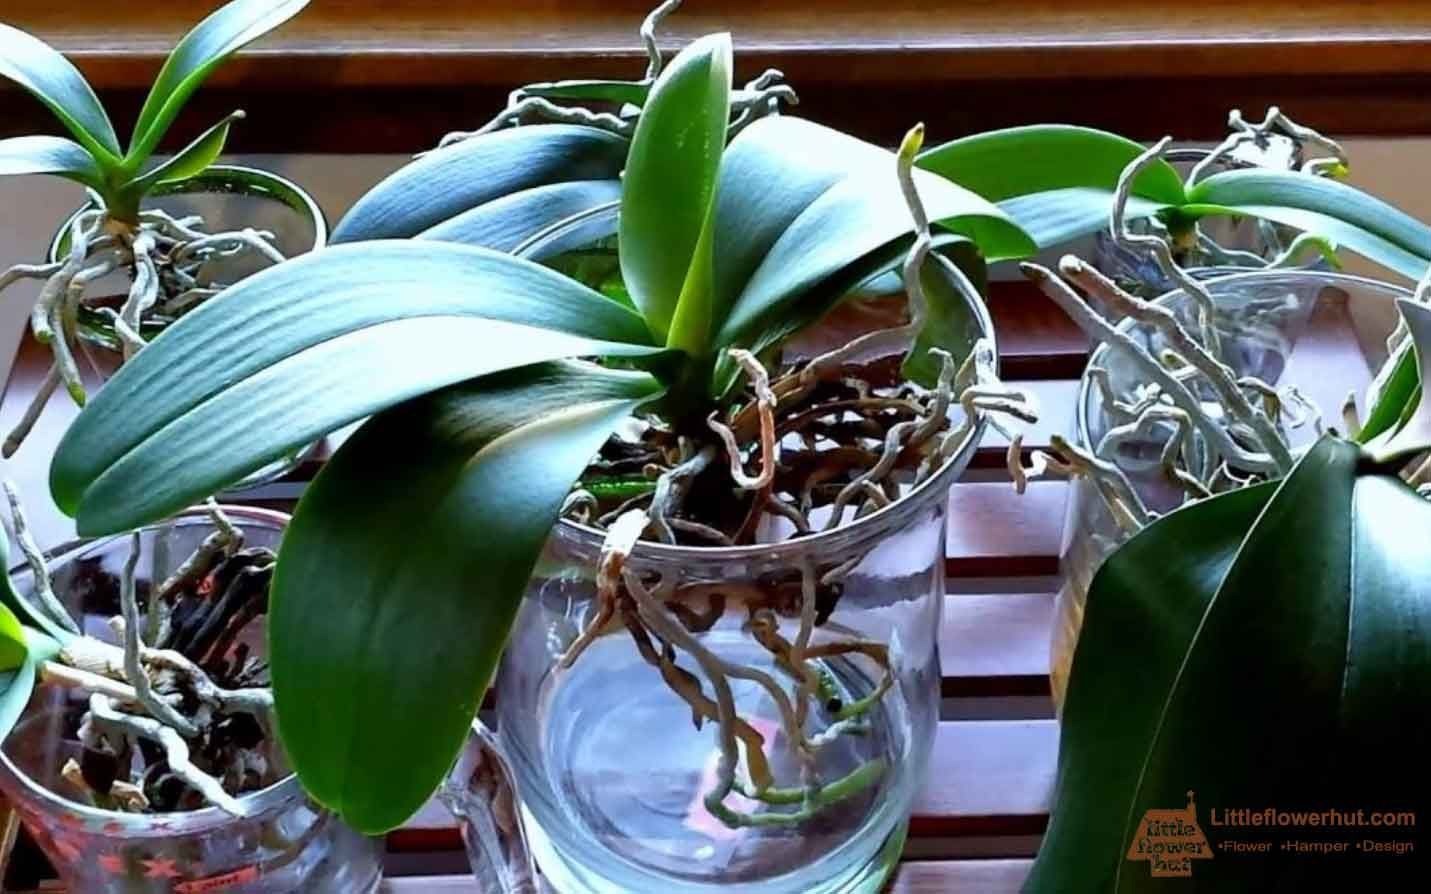 Can Orchids Grow in Water? Orchid potting mix, Potting